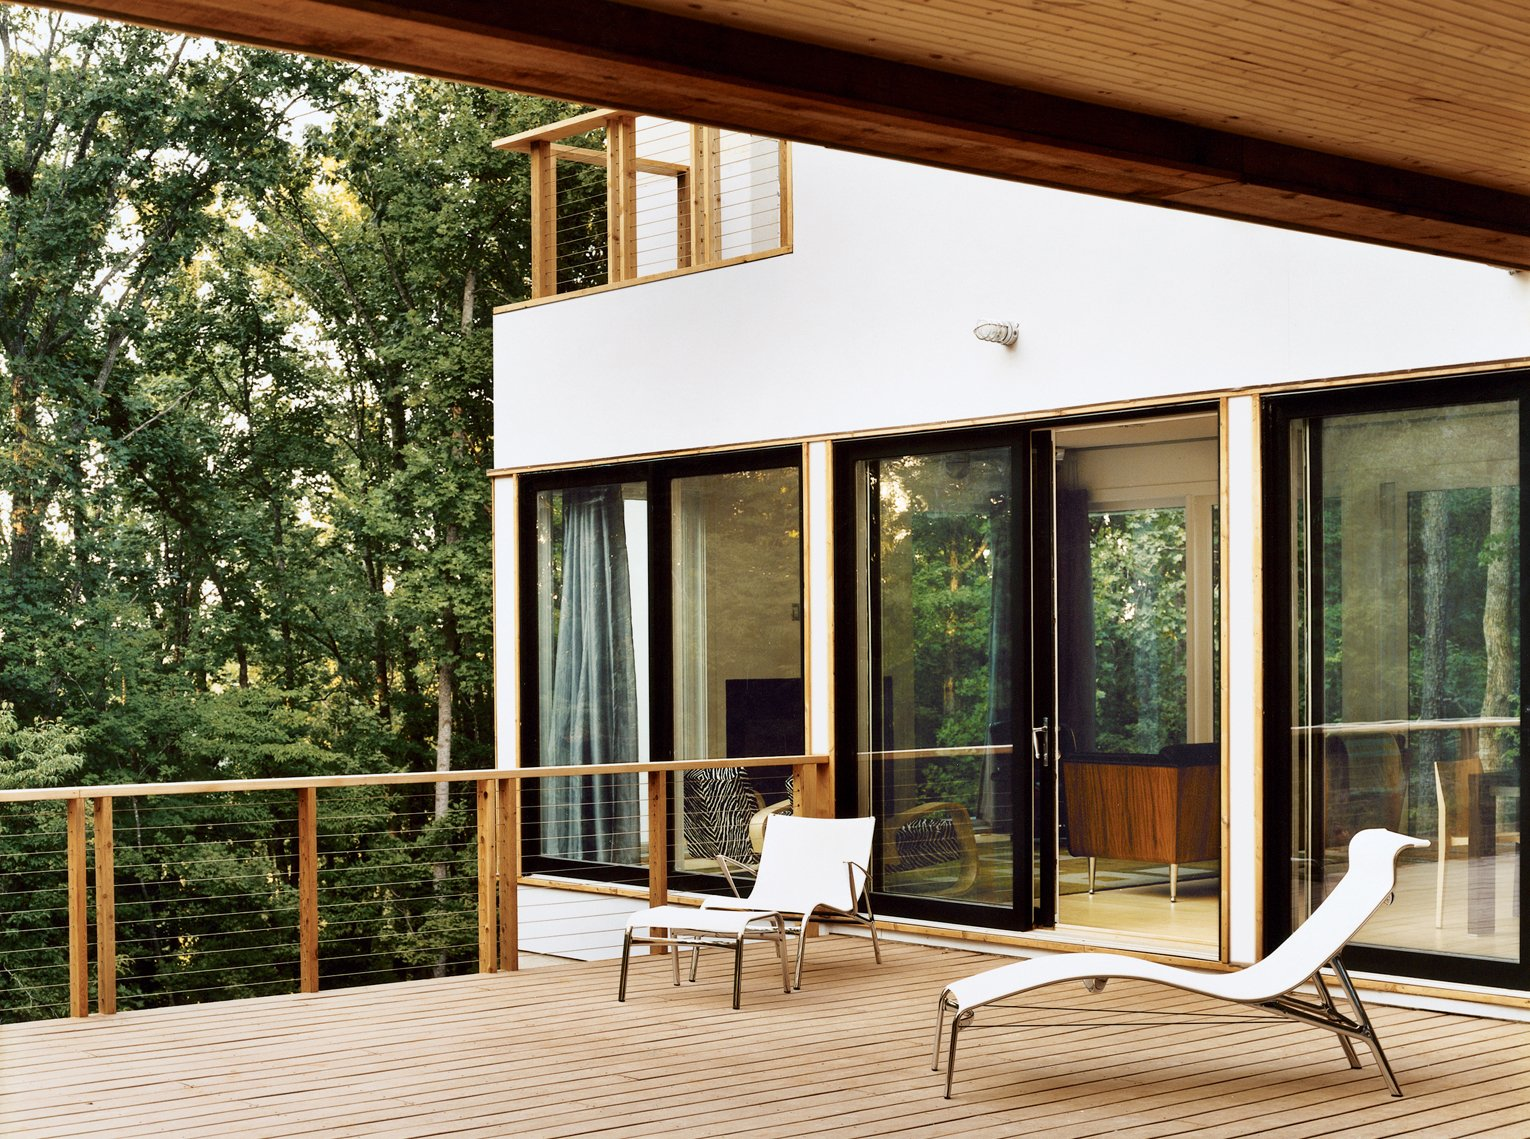 The private site allowed for generous windows and decks, but the Res 4 design could be adapted to   a more urban setting as well. Ultimately, the Dwell Home proves that a manufactured house can be site-specific. The design, scale, and materials are appropriate to the climate and context.